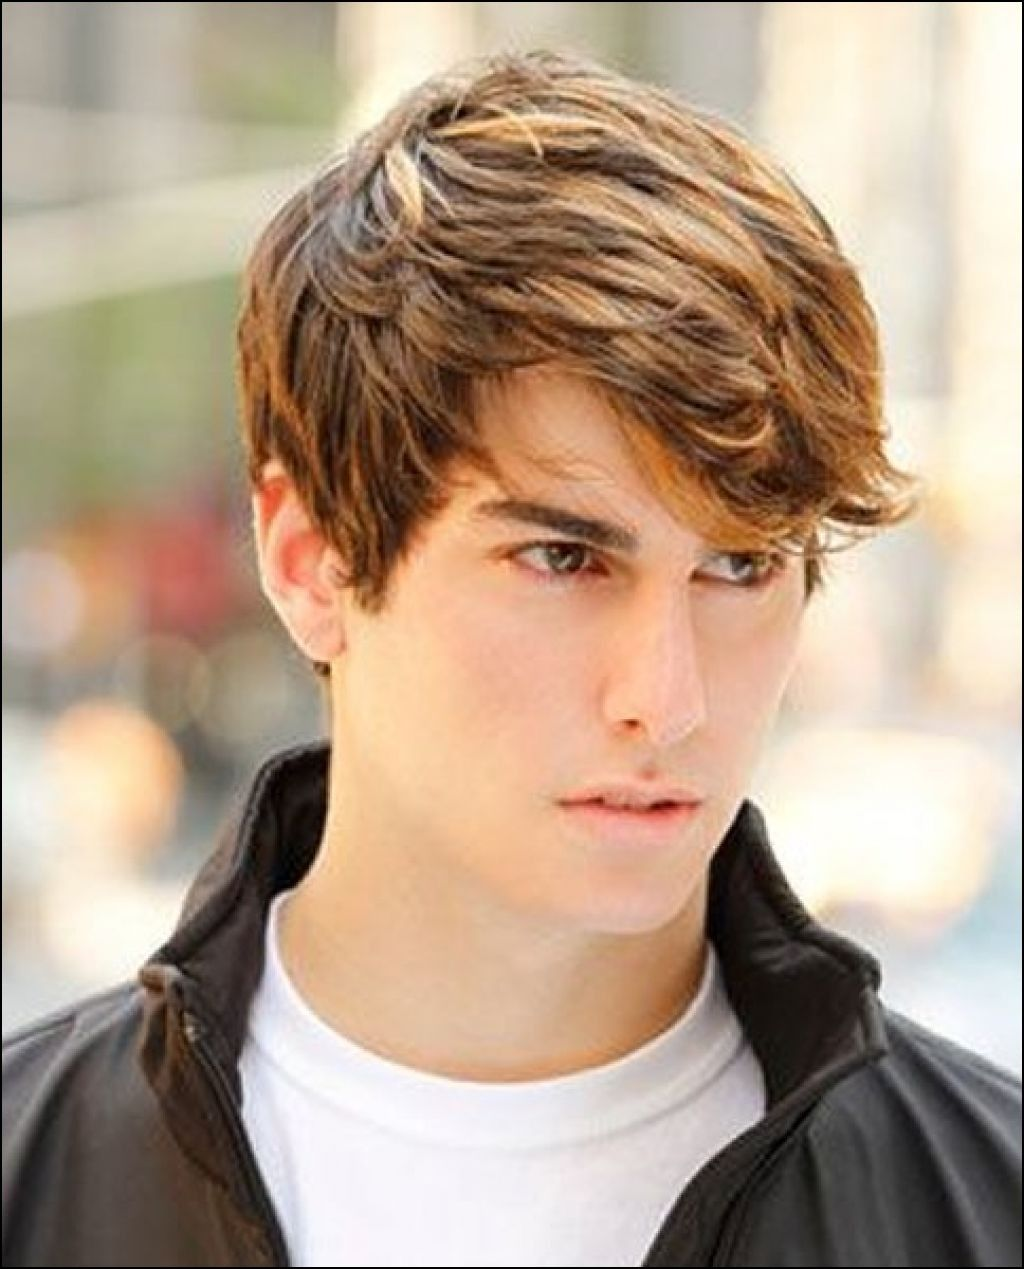 Attractive Hairstyles for Teenage Guys | Hairstyles Ideas ...